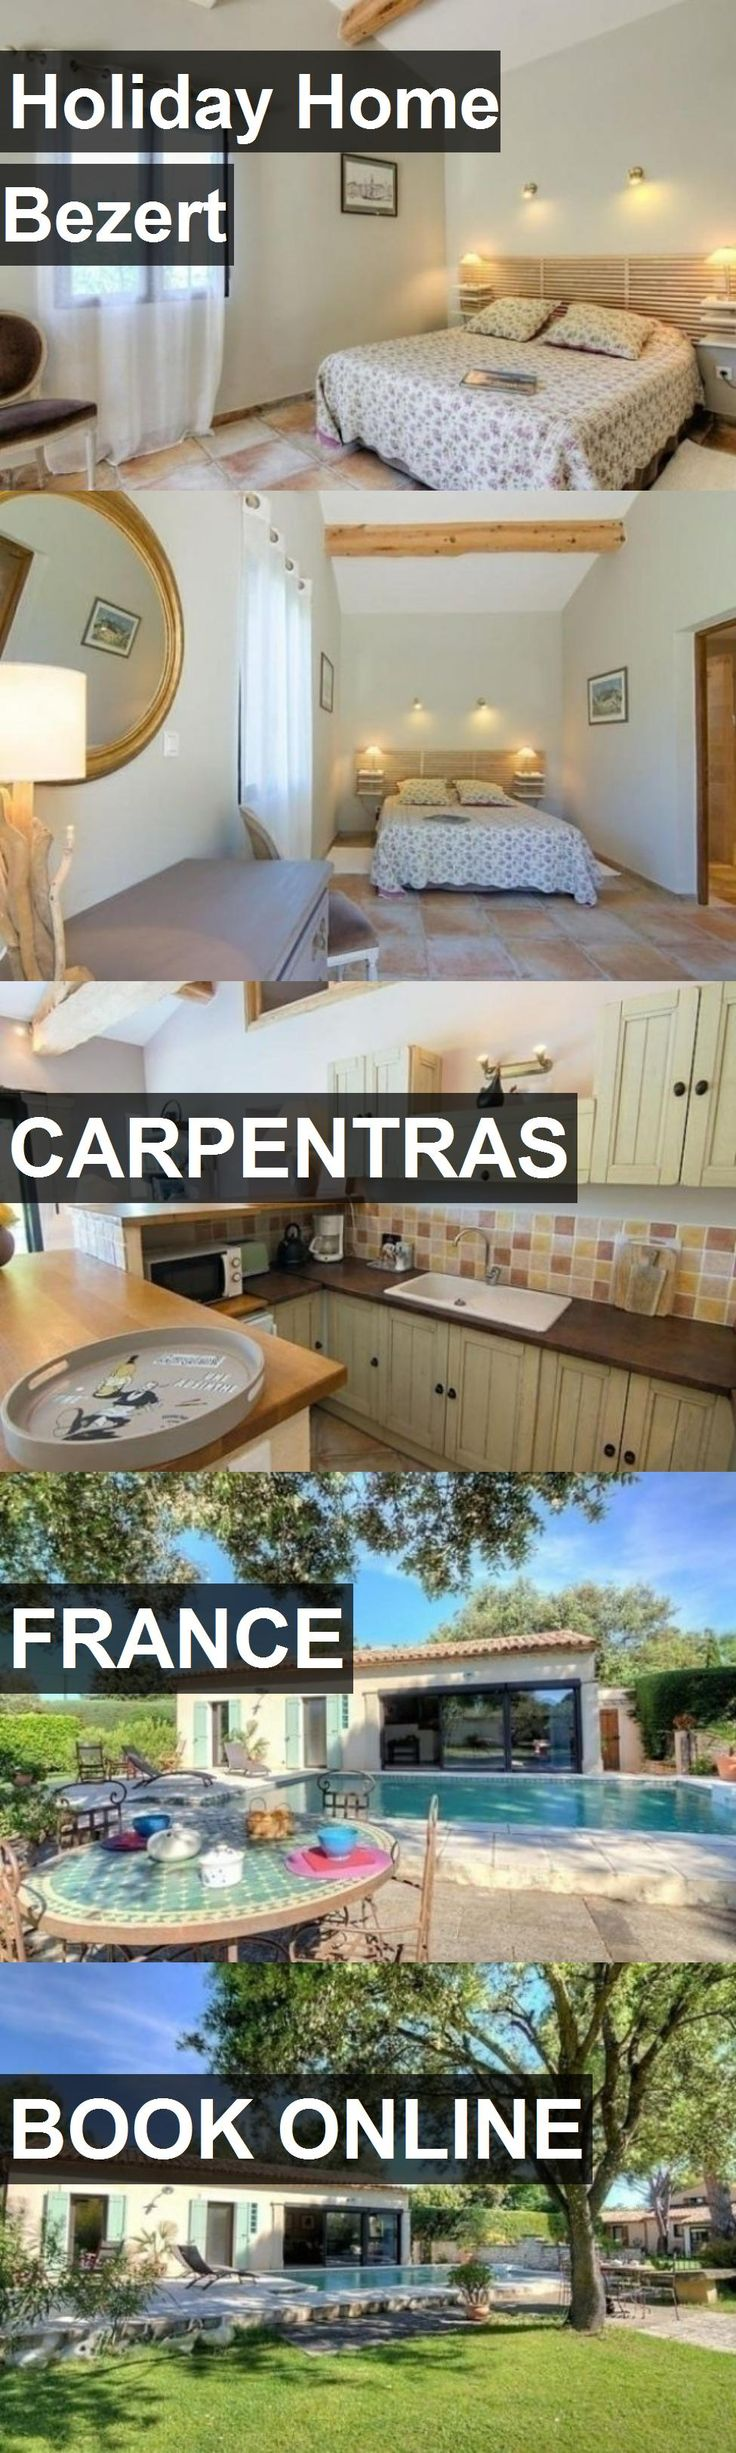 Hotel Holiday Home Bezert in Carpentras, France. For more information, photos, reviews and best prices please follow the link. #France #Carpentras #travel #vacation #hotel